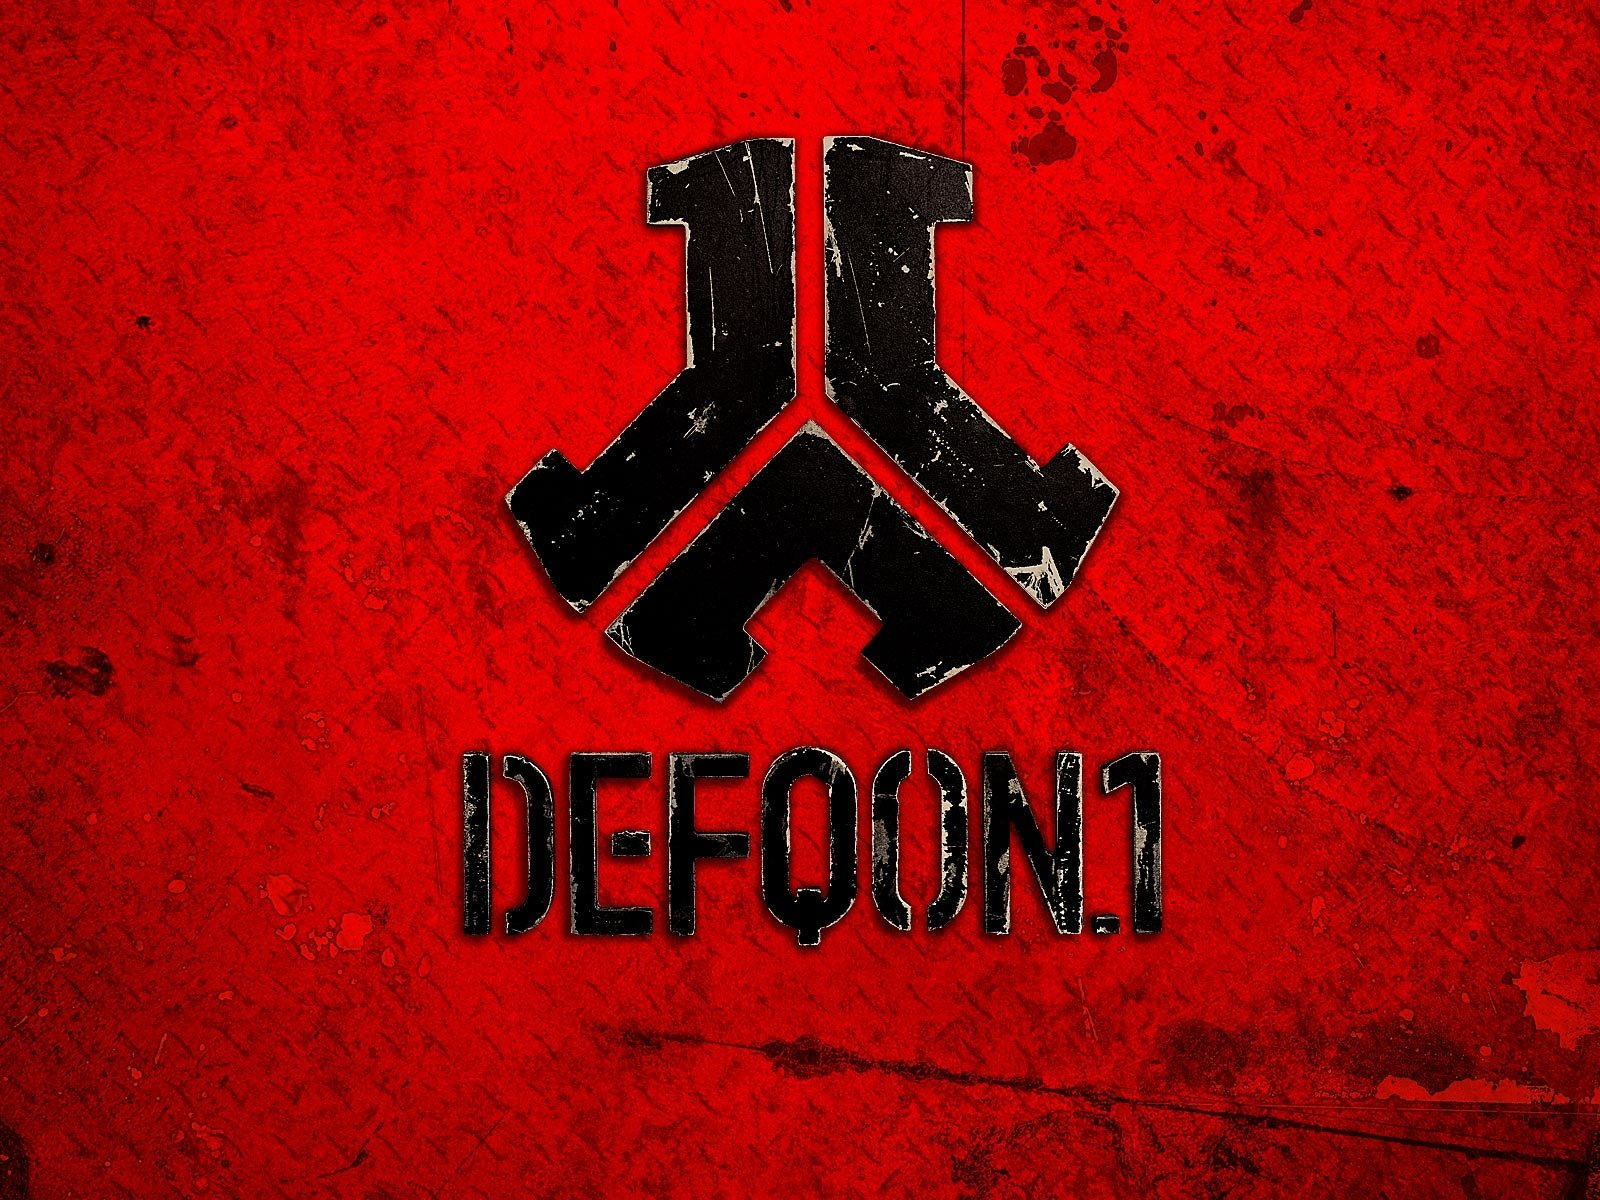 Defcon Wallpaper and Background Image 1600x1200 ID77364 1600x1200